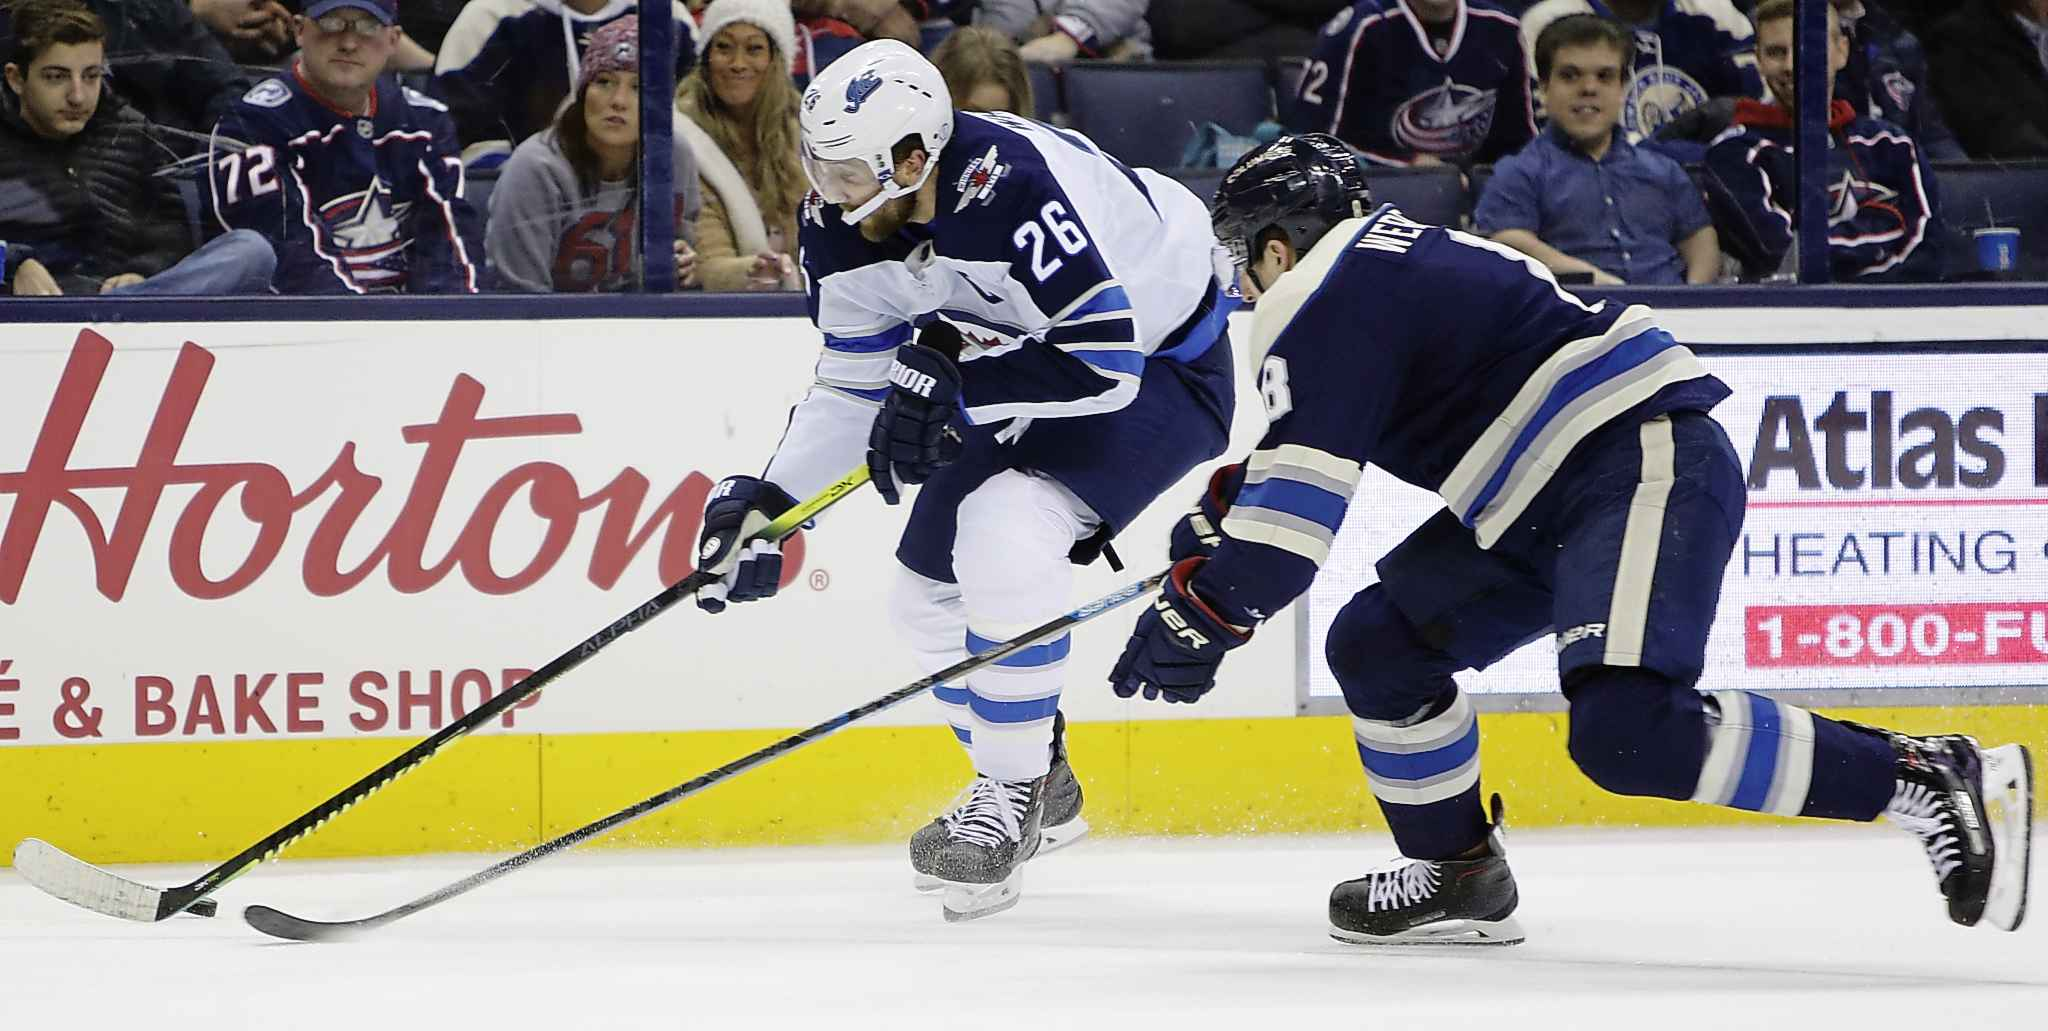 JAY LAPRETE / THE ASSOCIATED PRESS</p><p>Winnipeg Jets&#39; Blake Wheeler, left, carries the puck up ice against Columbus Blue Jackets&#39; Zach Werenski during the first period of an NHL hockey game Sunday, March 3, 2019, in Columbus, Ohio.</p>